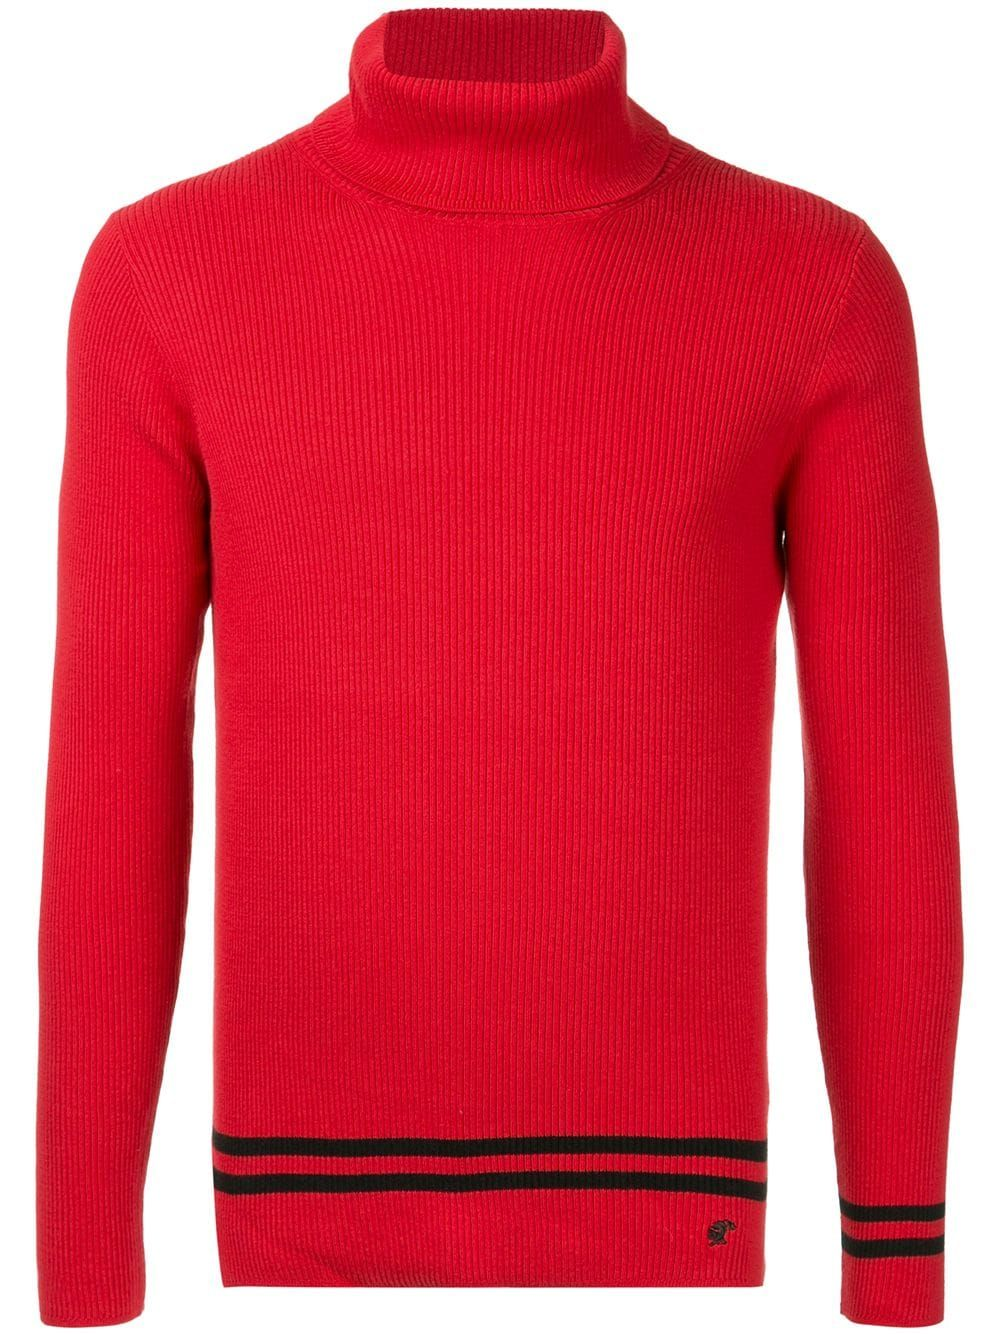 Red loveless cloth Top Loveless Turtleneck Knit Fwzqf48F6x